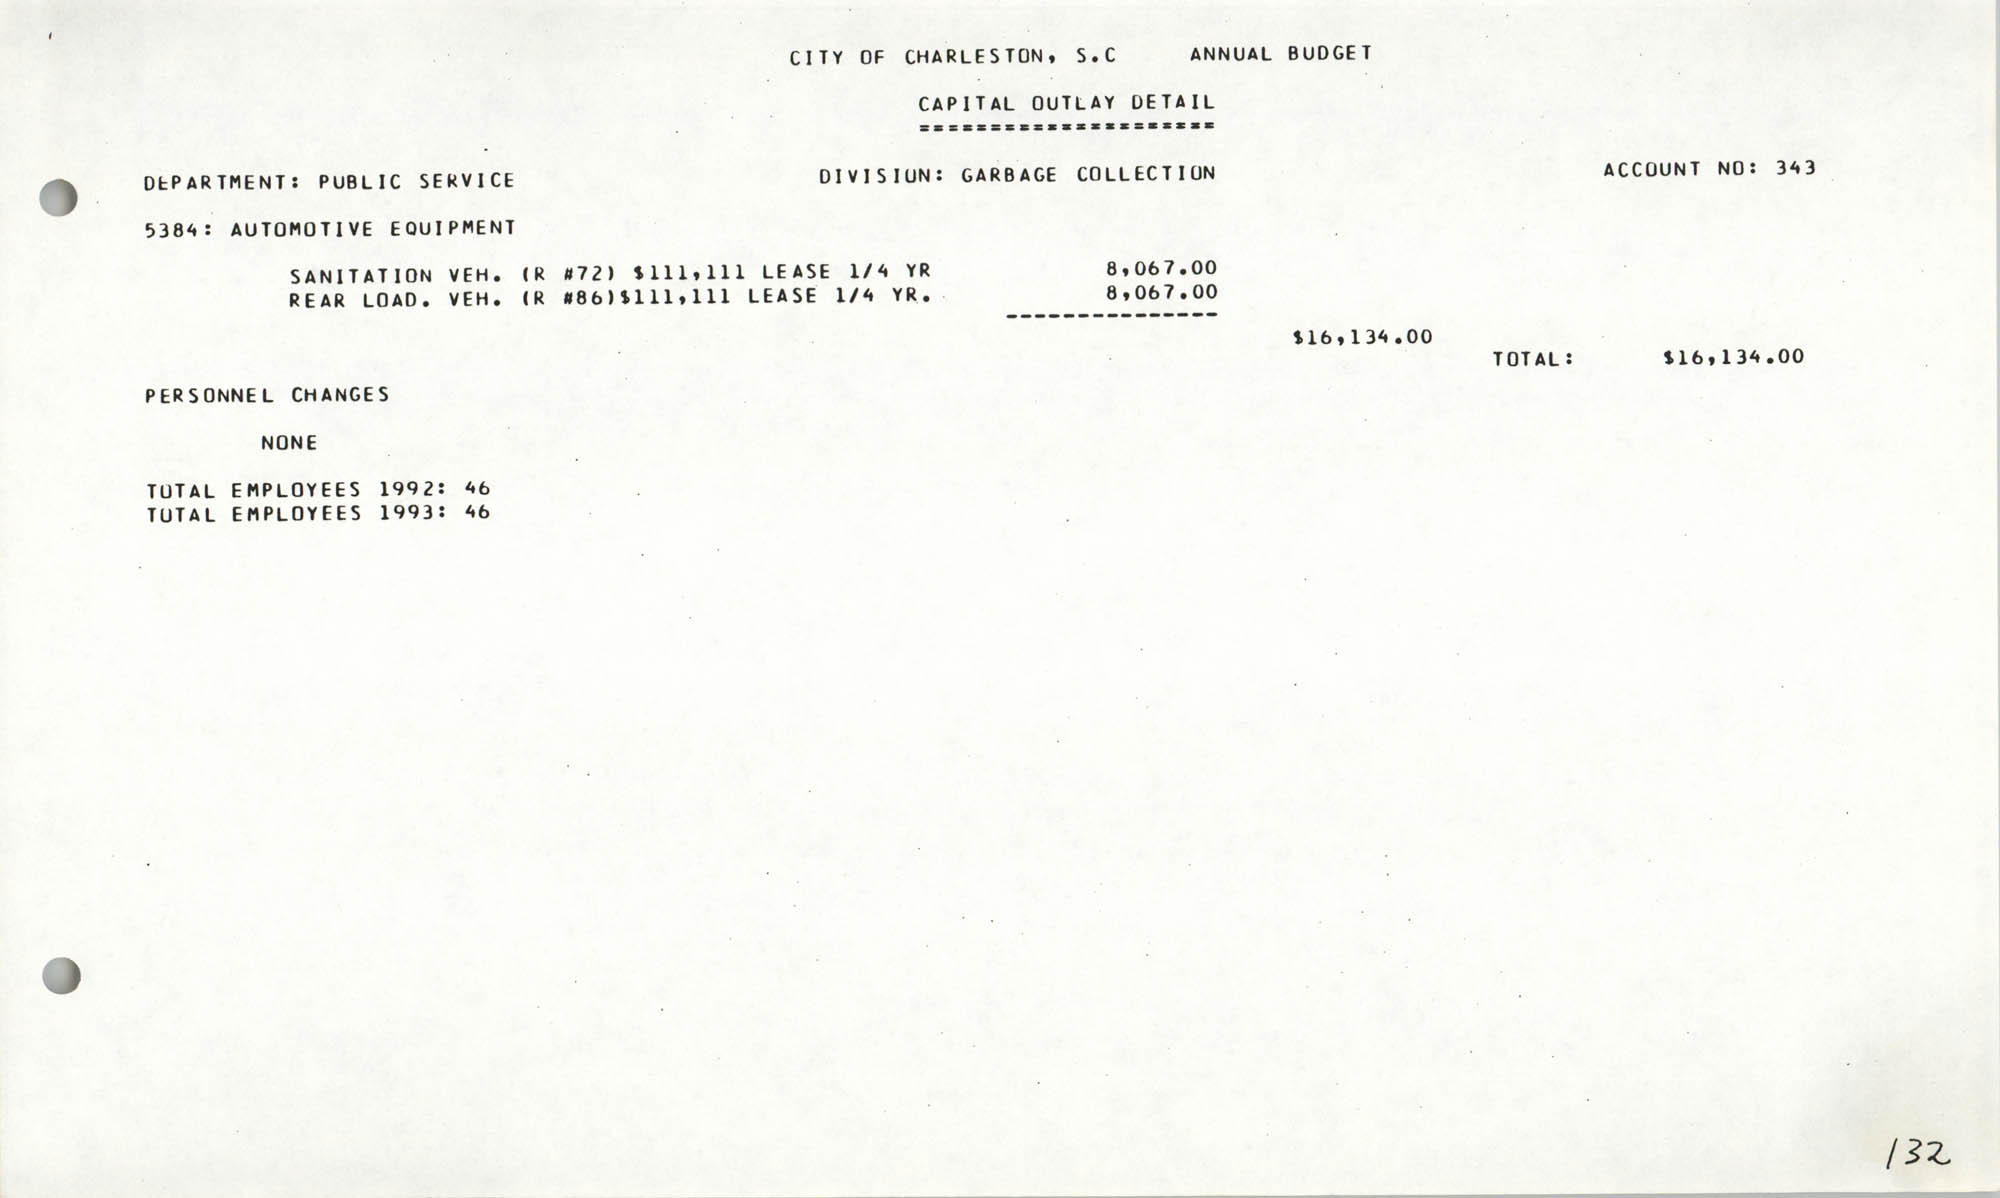 The City Council of Charleston, South Carolina, 1993 Budget, Page 132